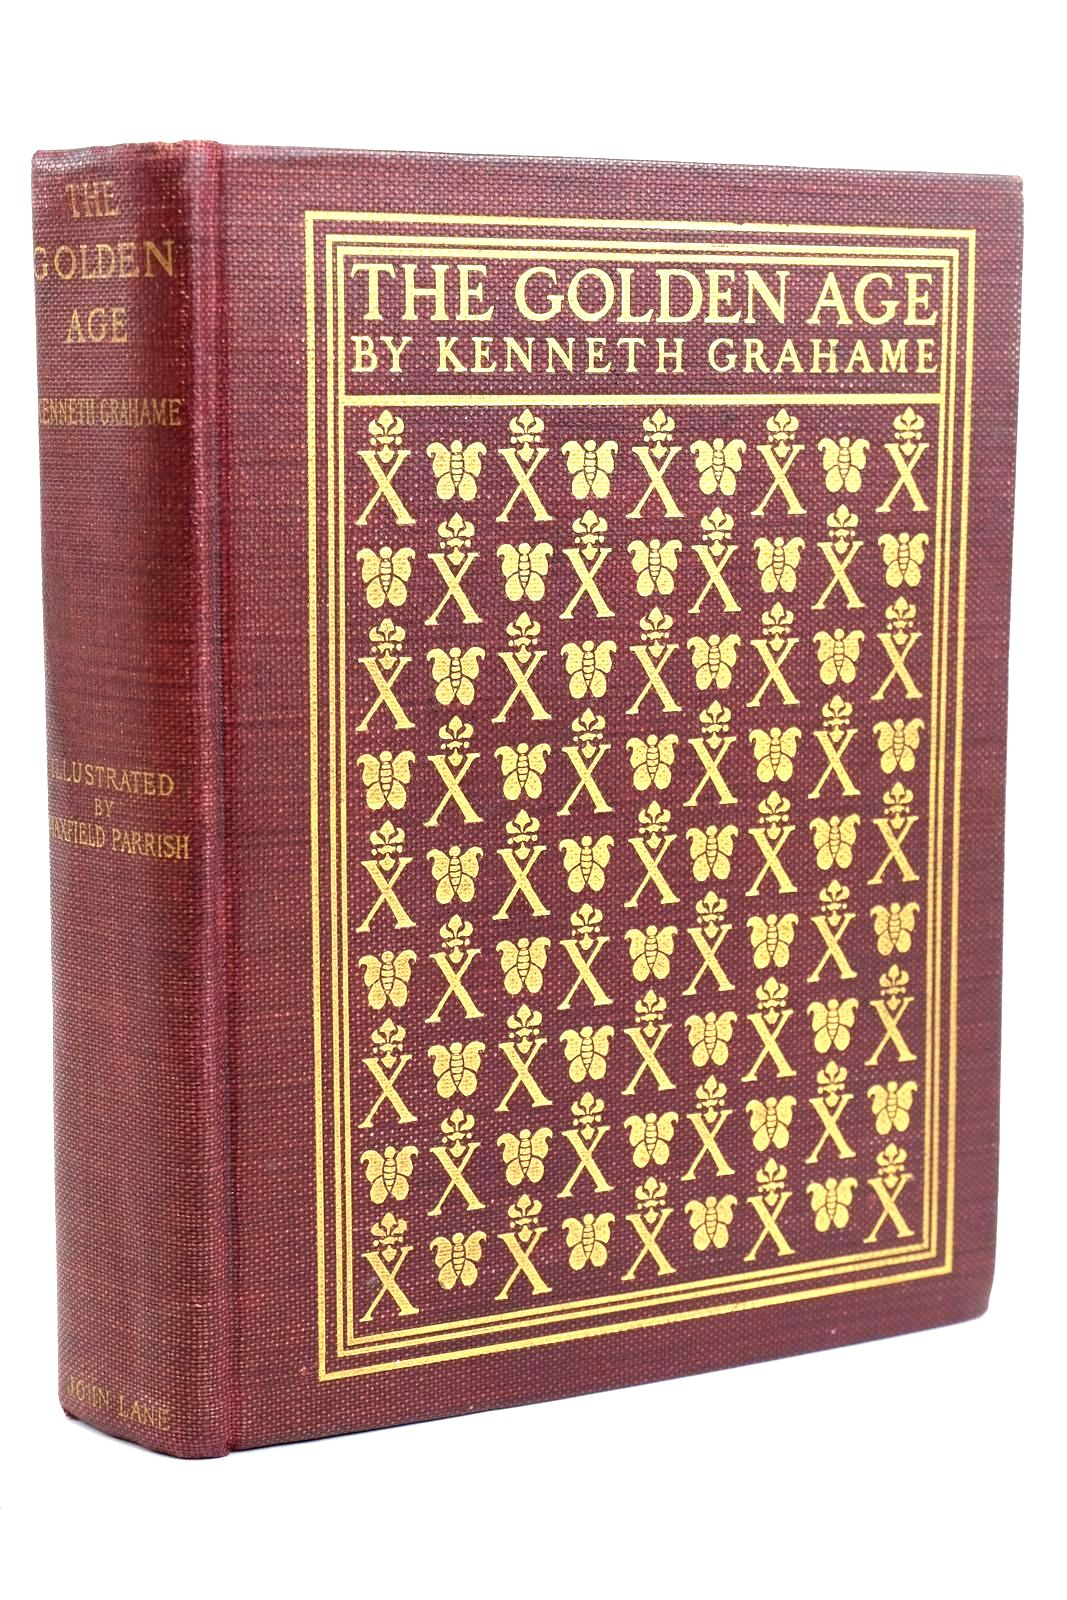 Photo of THE GOLDEN AGE written by Grahame, Kenneth illustrated by Parrish, Maxfield published by John Lane, The Bodley Head (STOCK CODE: 1320460)  for sale by Stella & Rose's Books